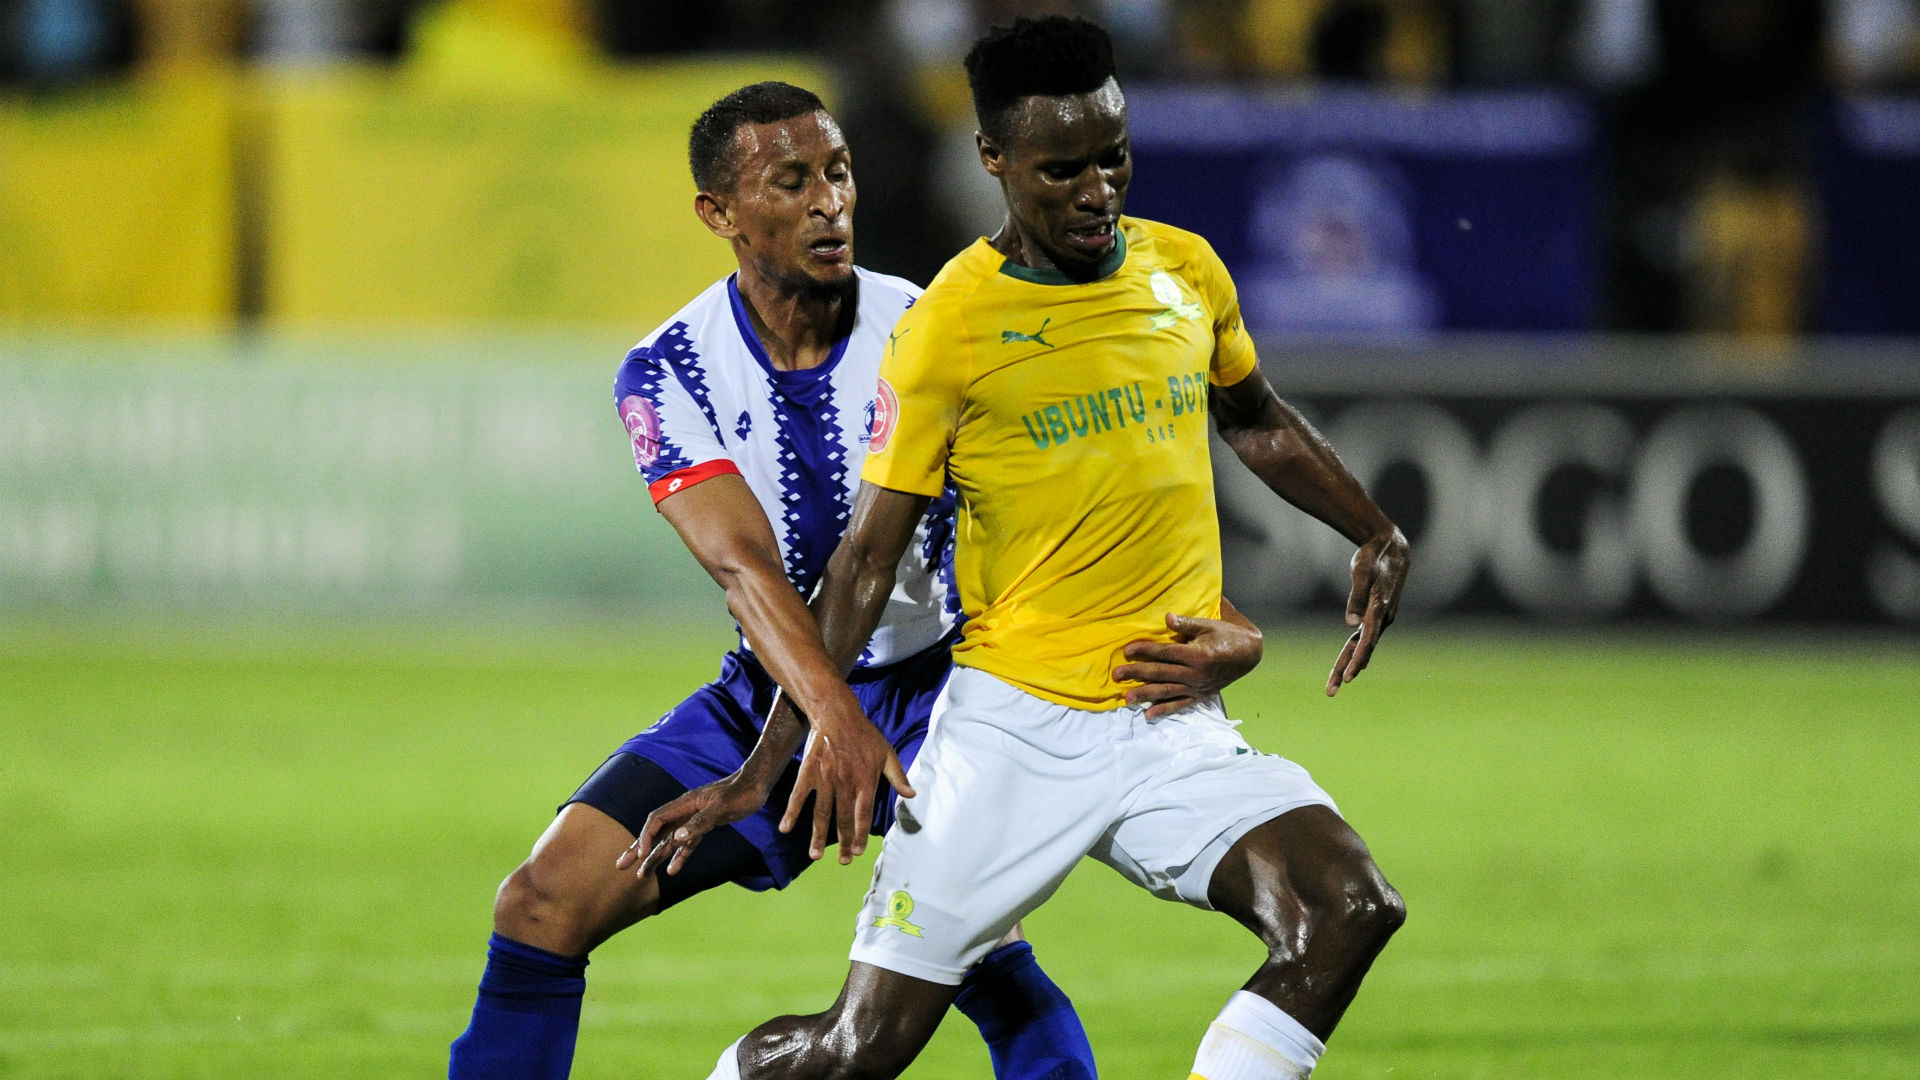 Mamelodi Sundowns vs Maritzburg United: Zwane, Allie & the five players who have been in top form